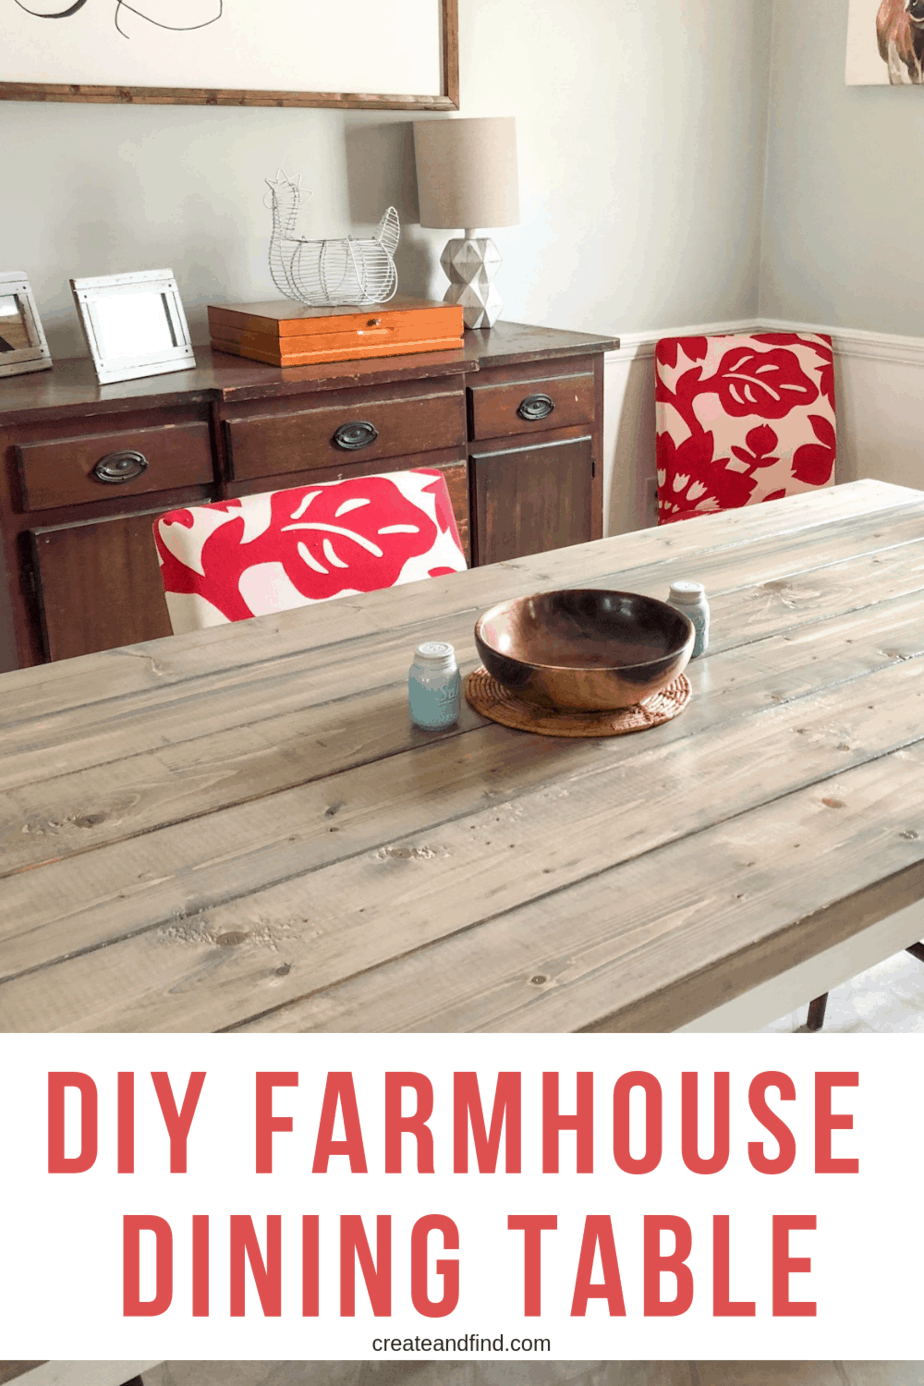 Build your own DIY Farmhouse Table with these easy to follow instructions. A DIY Project that can save you hundreds of dollars on a new dining table #createandfind #diyfarmhousetable #diytable #farmhousestyle